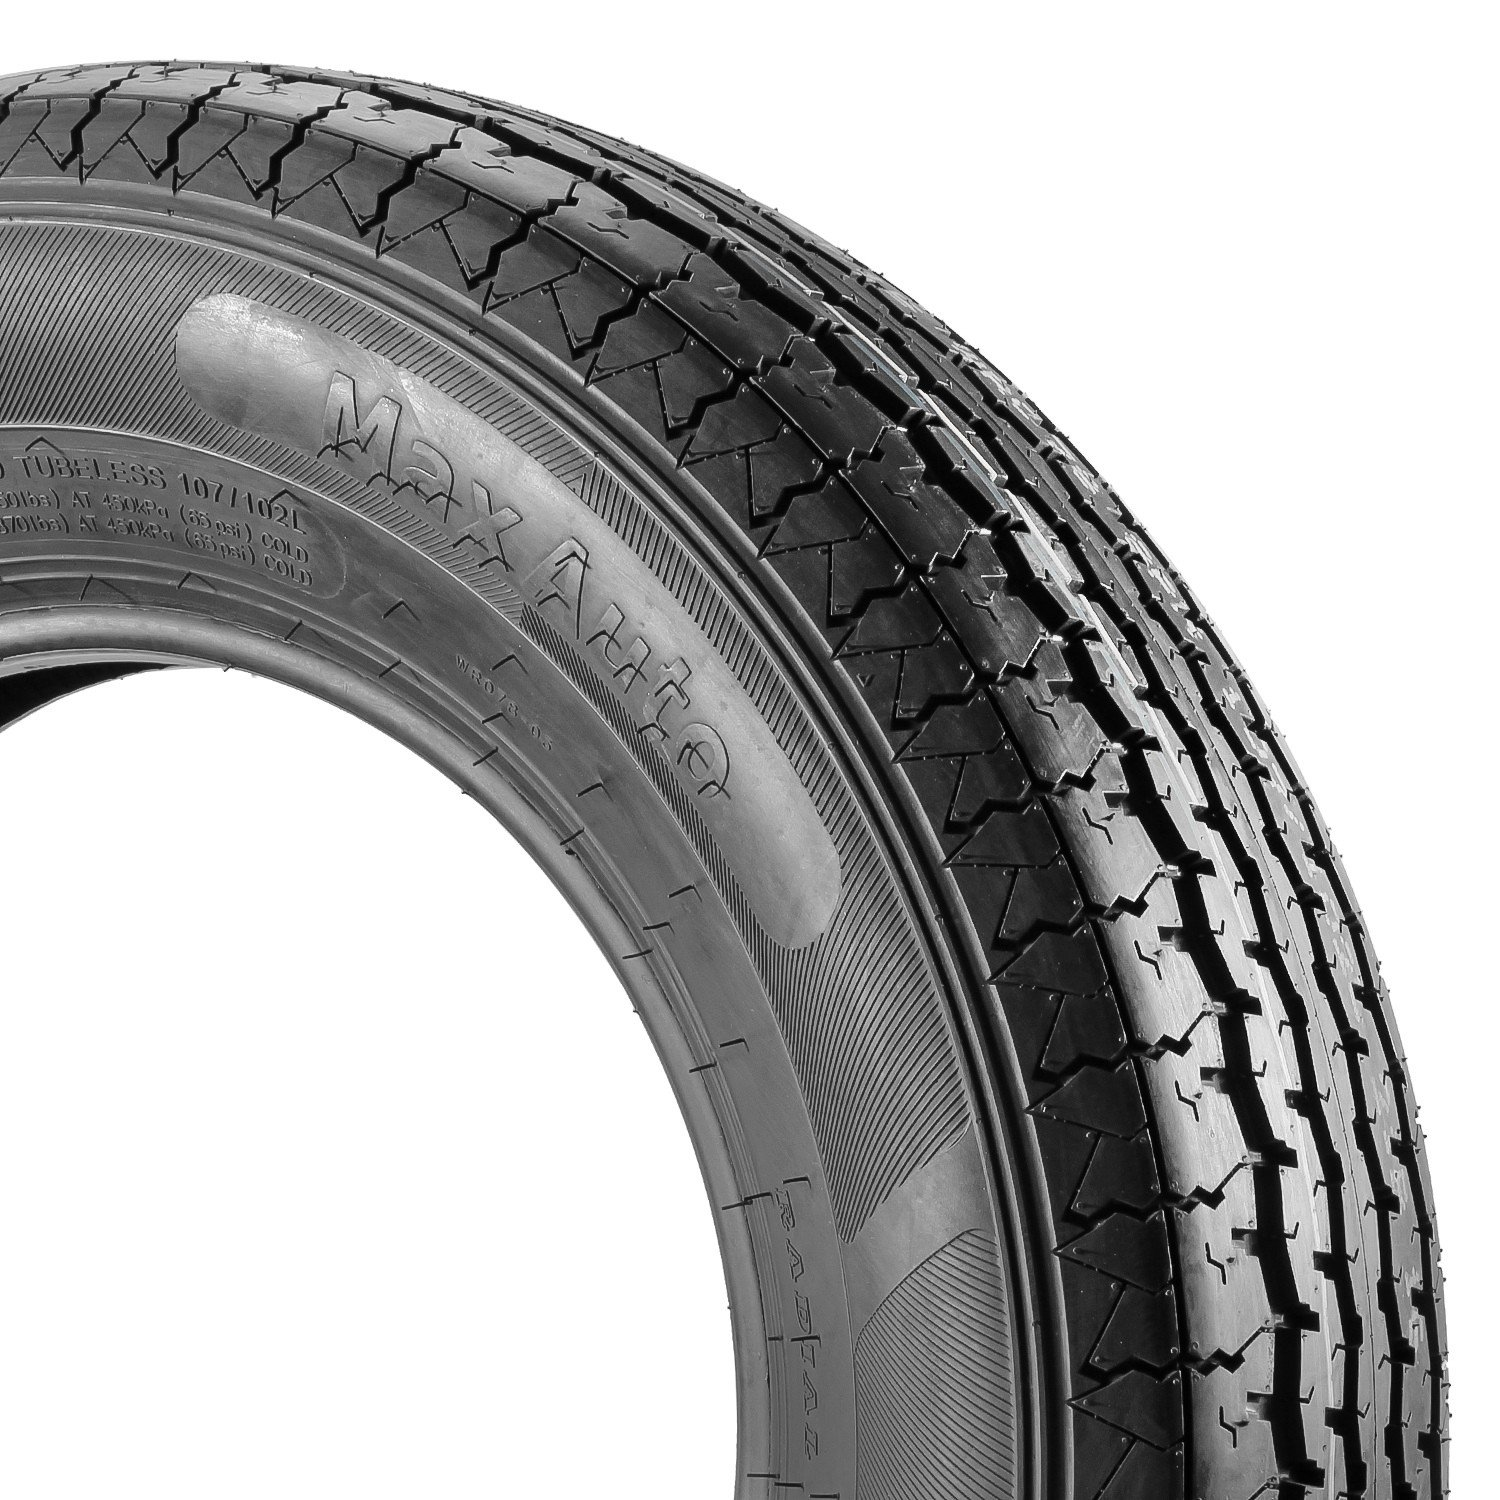 MaxAuto Radial Trailer Tires - ST205/75R15 ST205/75R-15 2057515 8Ply(Pack of 4) by MaxAuto (Image #4)